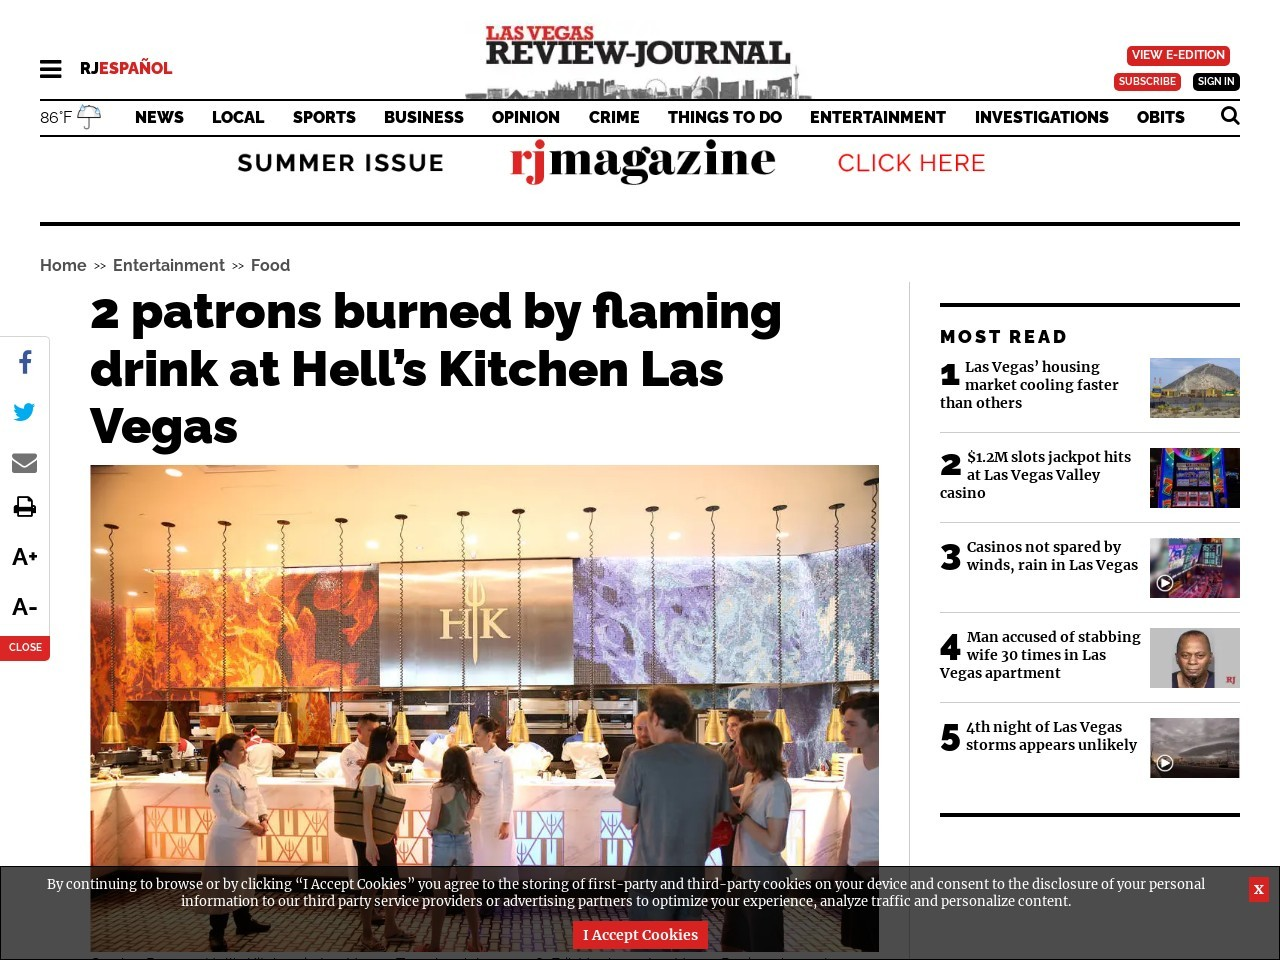 2 patrons burned by flaming drink at Hell's Kitchen Las Vegas